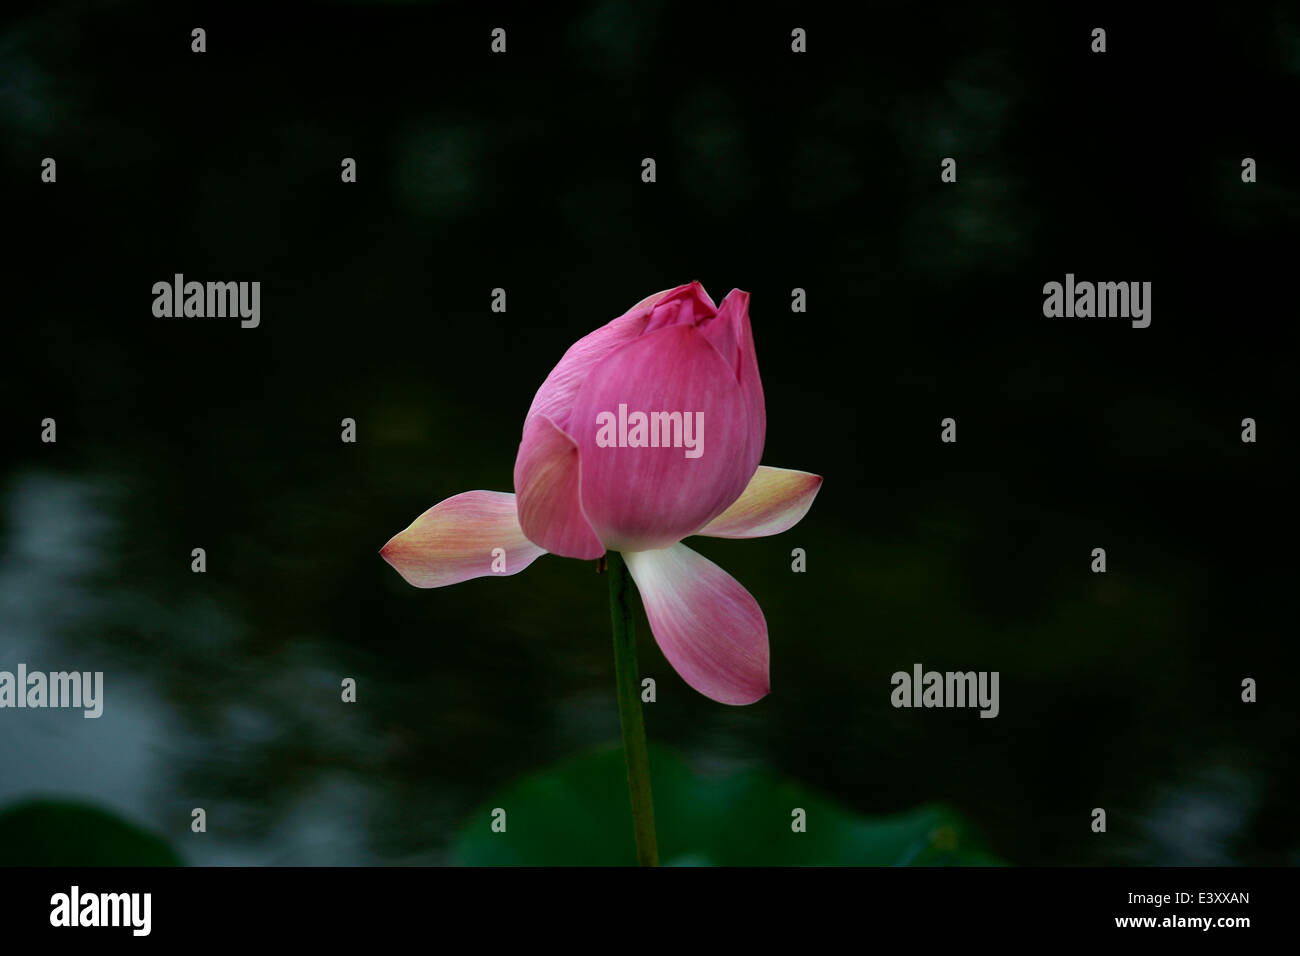 Indian Flower Names Stock Photos Indian Flower Names Stock Images